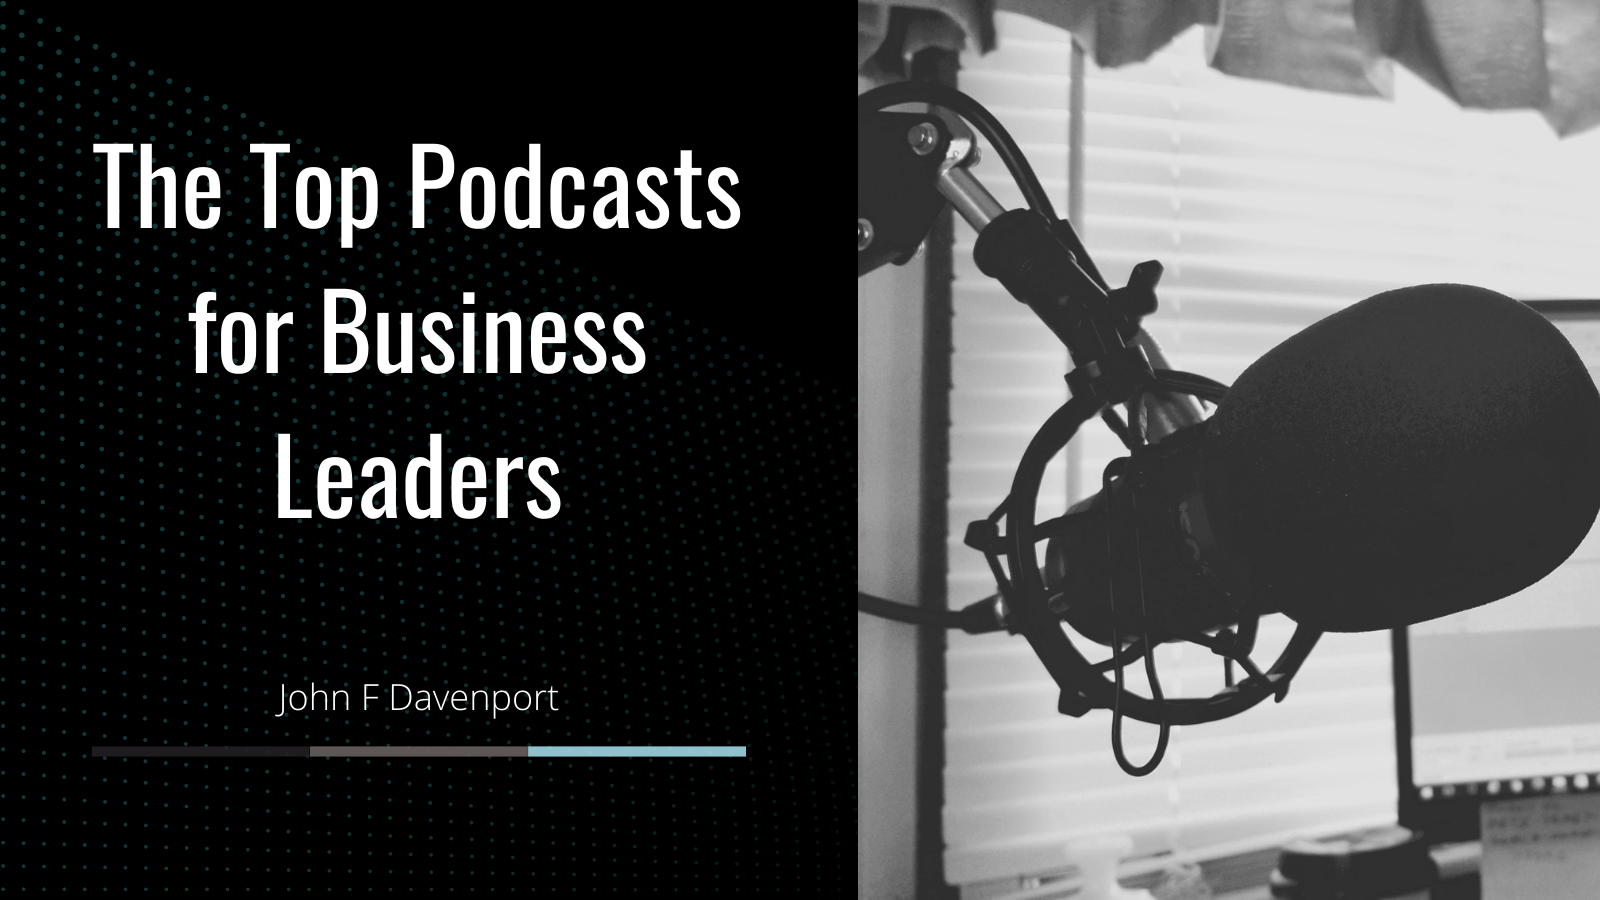 The Top Podcasts for Business Leaders  John F Davenport